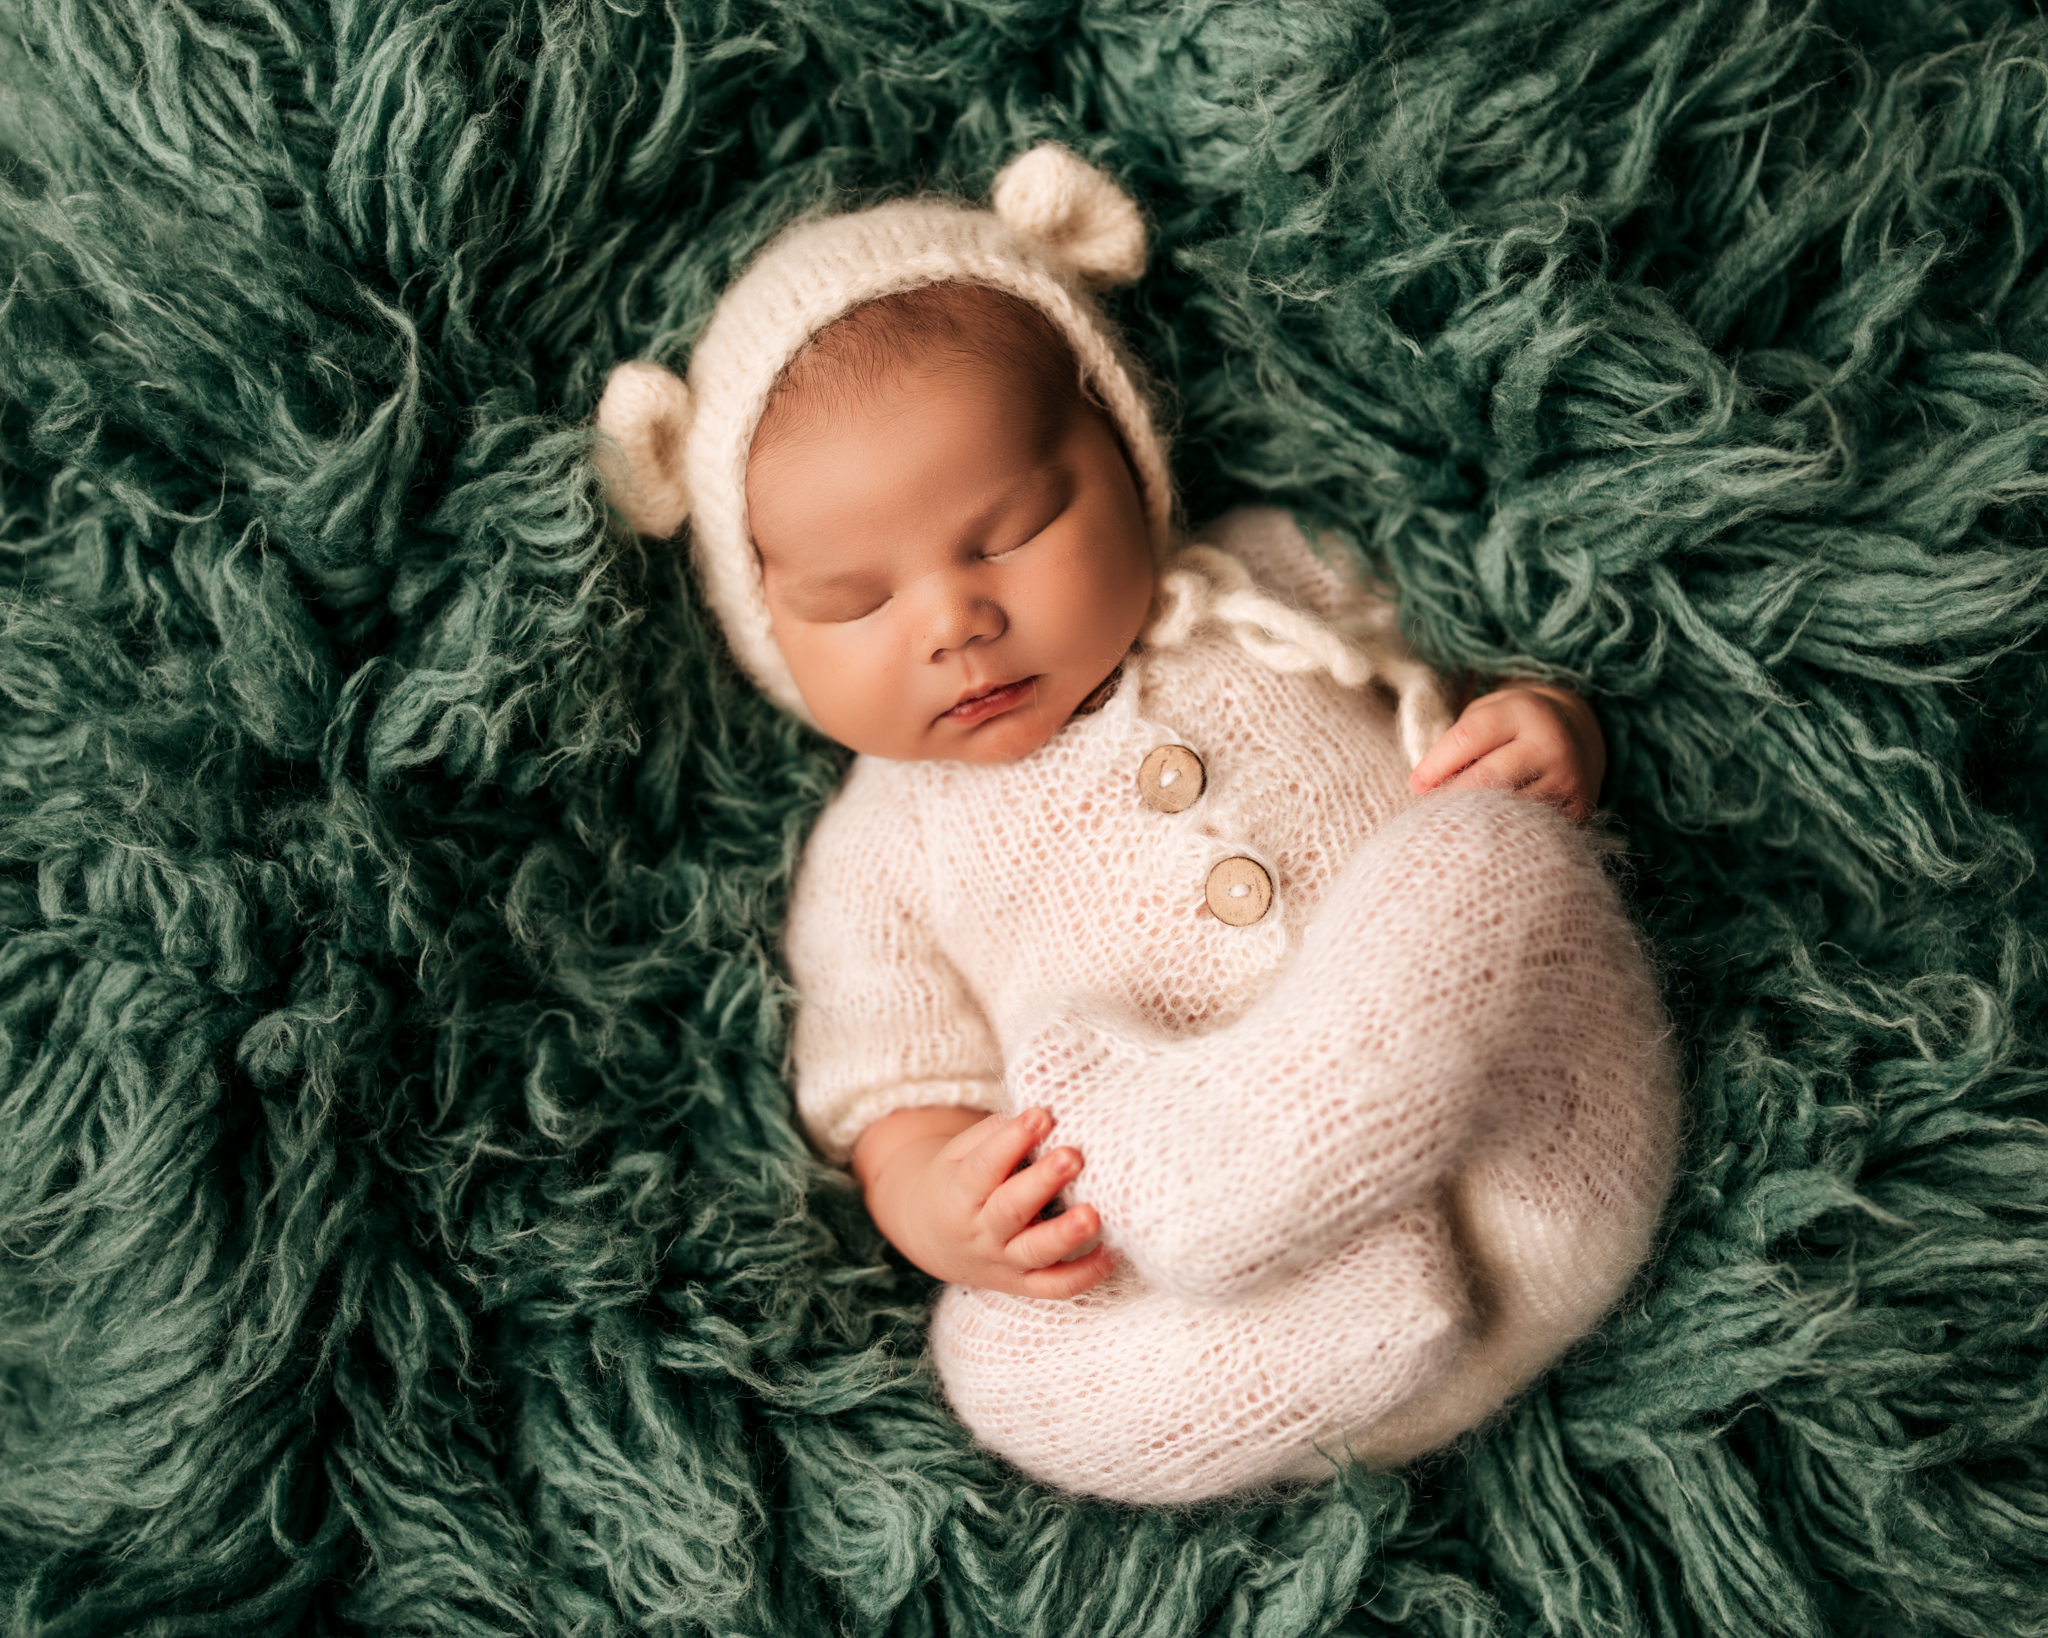 Baby in knit outfit with bear ear bonnet on a green shag carpet